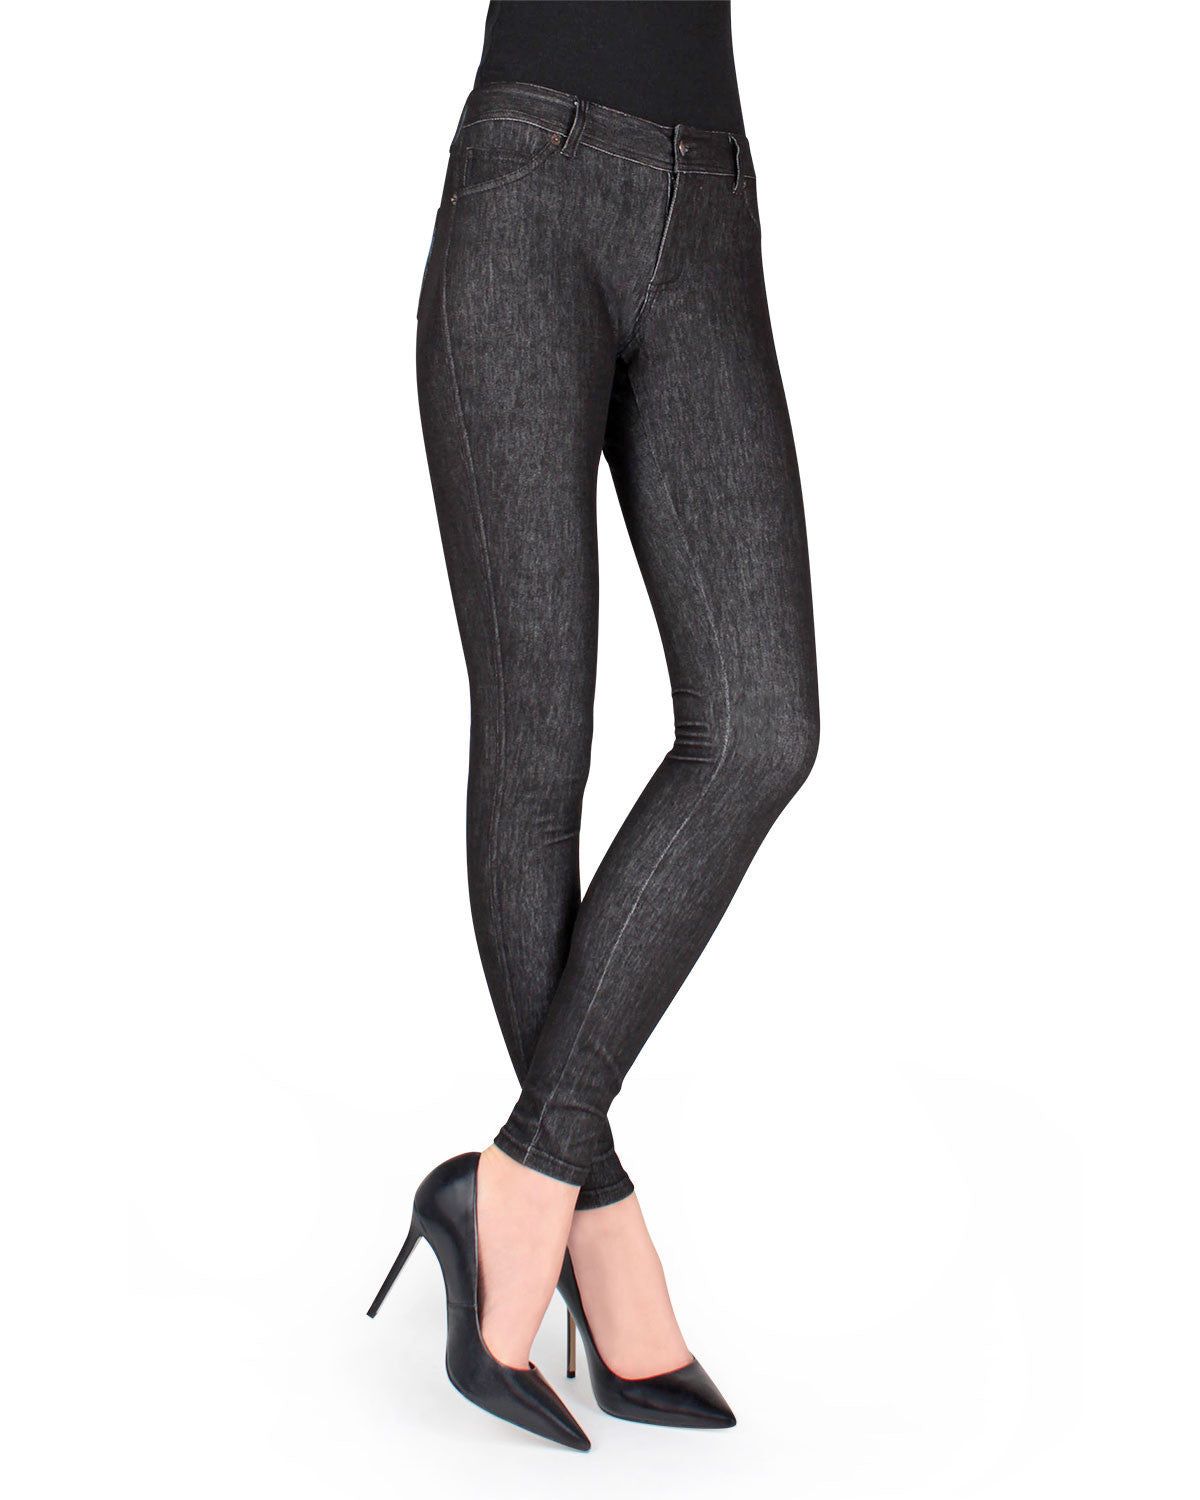 Unbottled Jean Legging